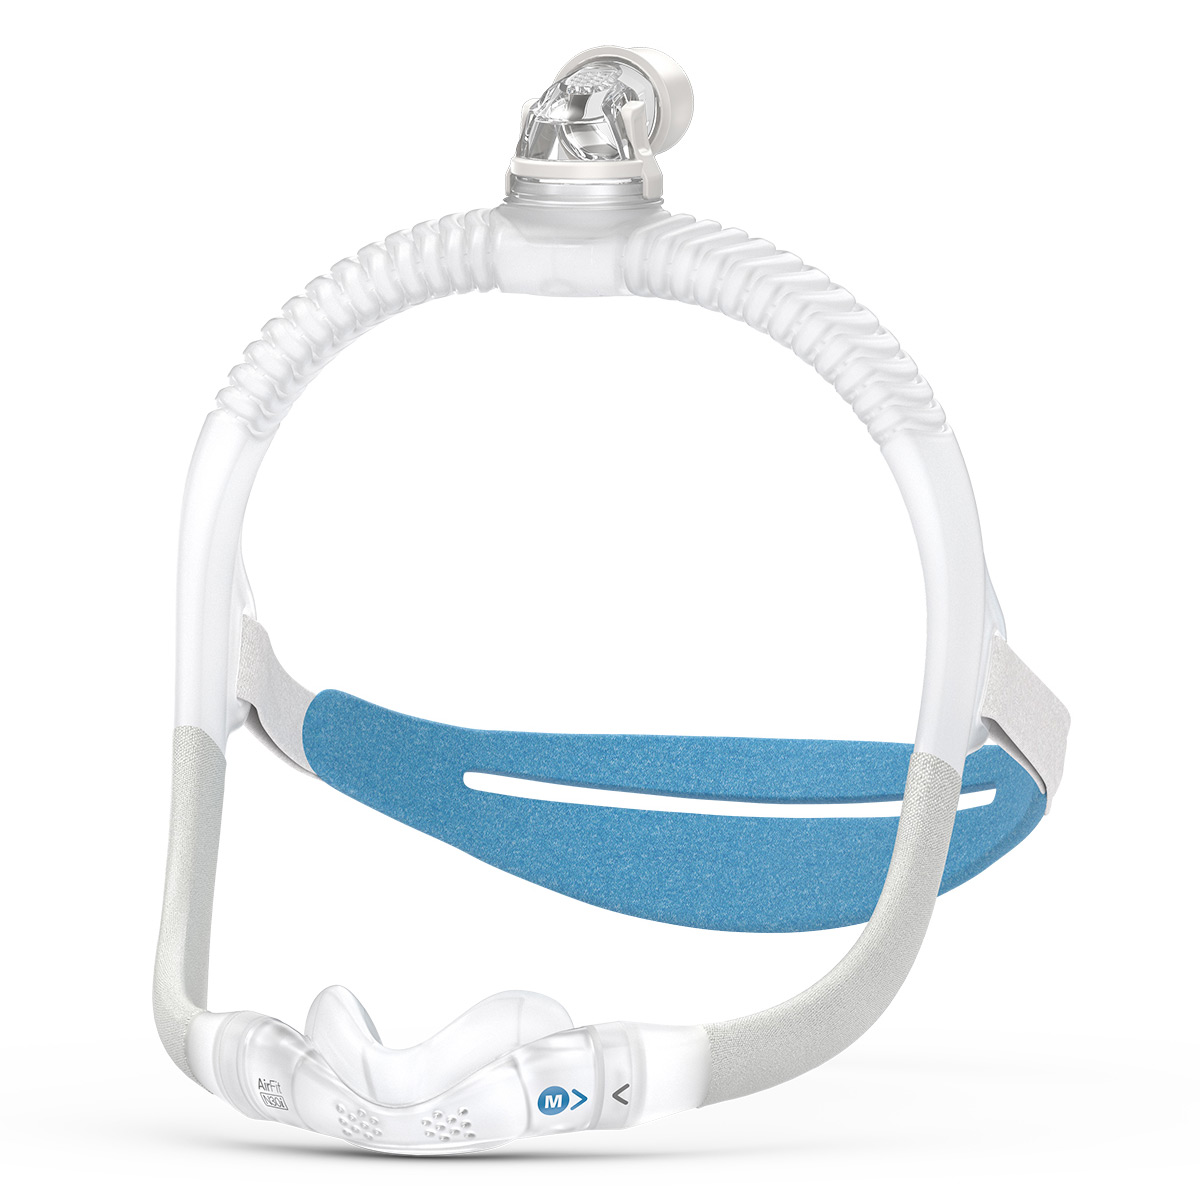 AirFit N30i Nasal Mask System with Headgear